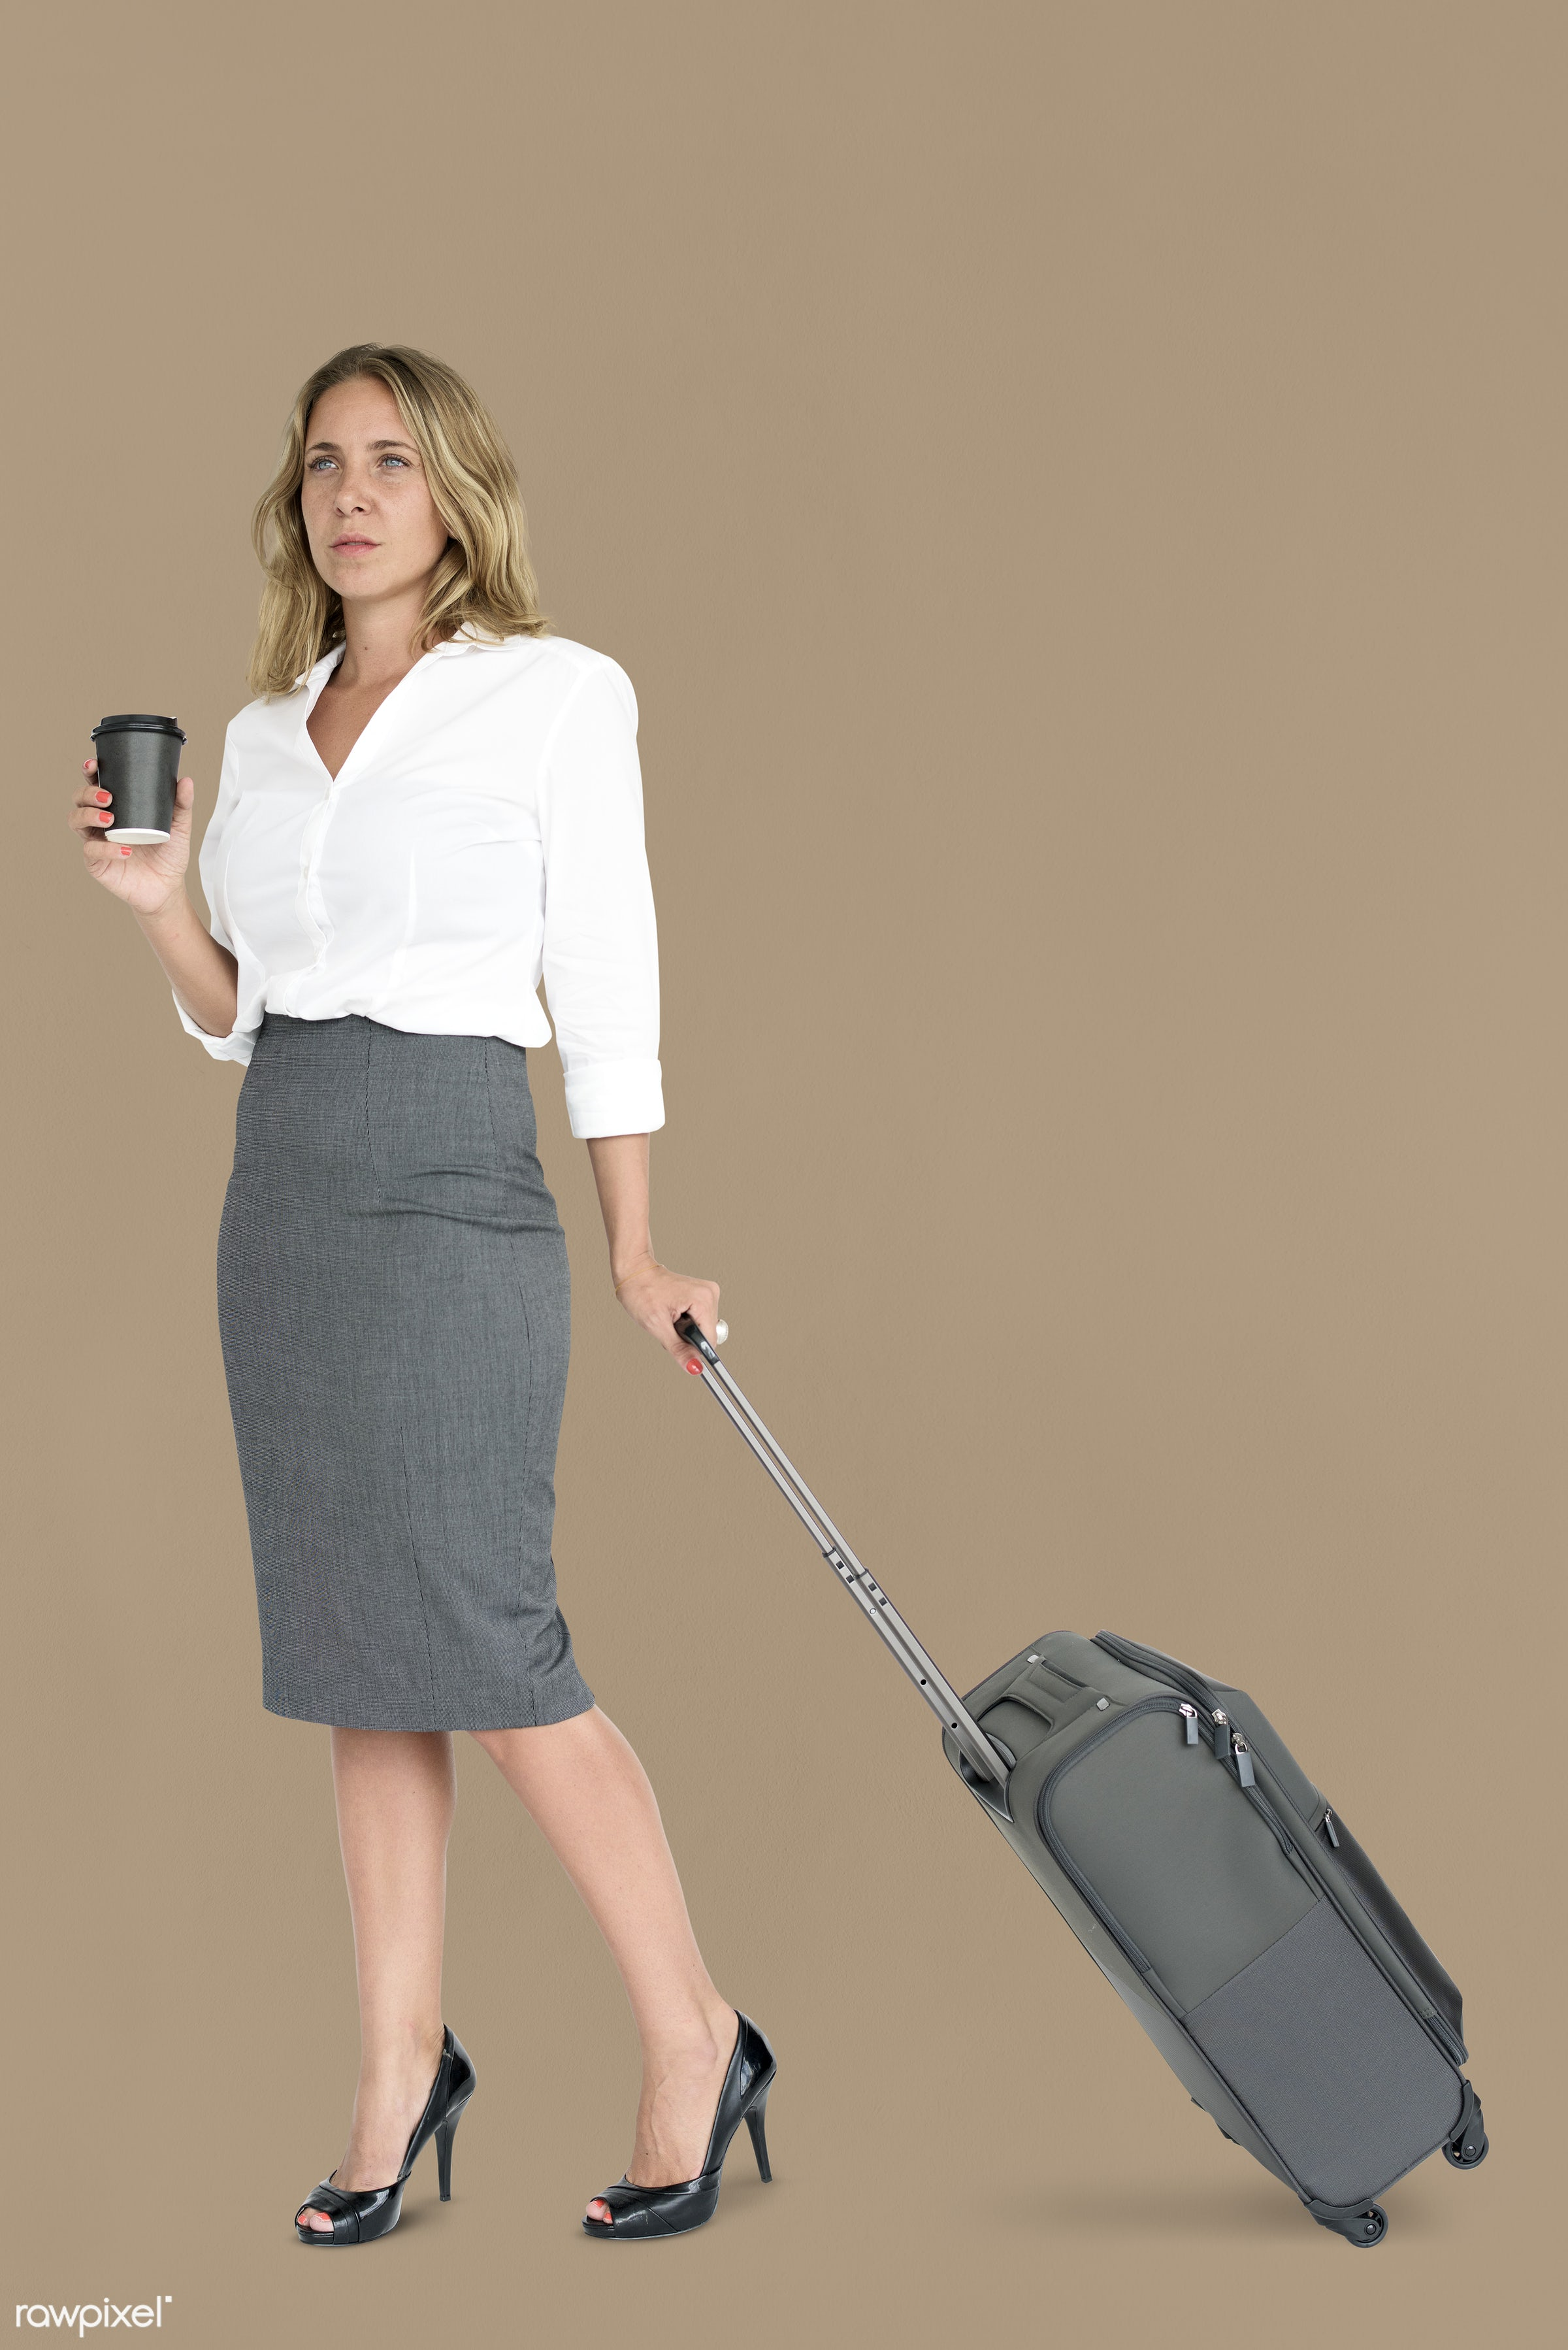 cup, studio, face, person, travel, people, drinks, business, trip, man, isolated, suitcase, male, coffee, traveler,...